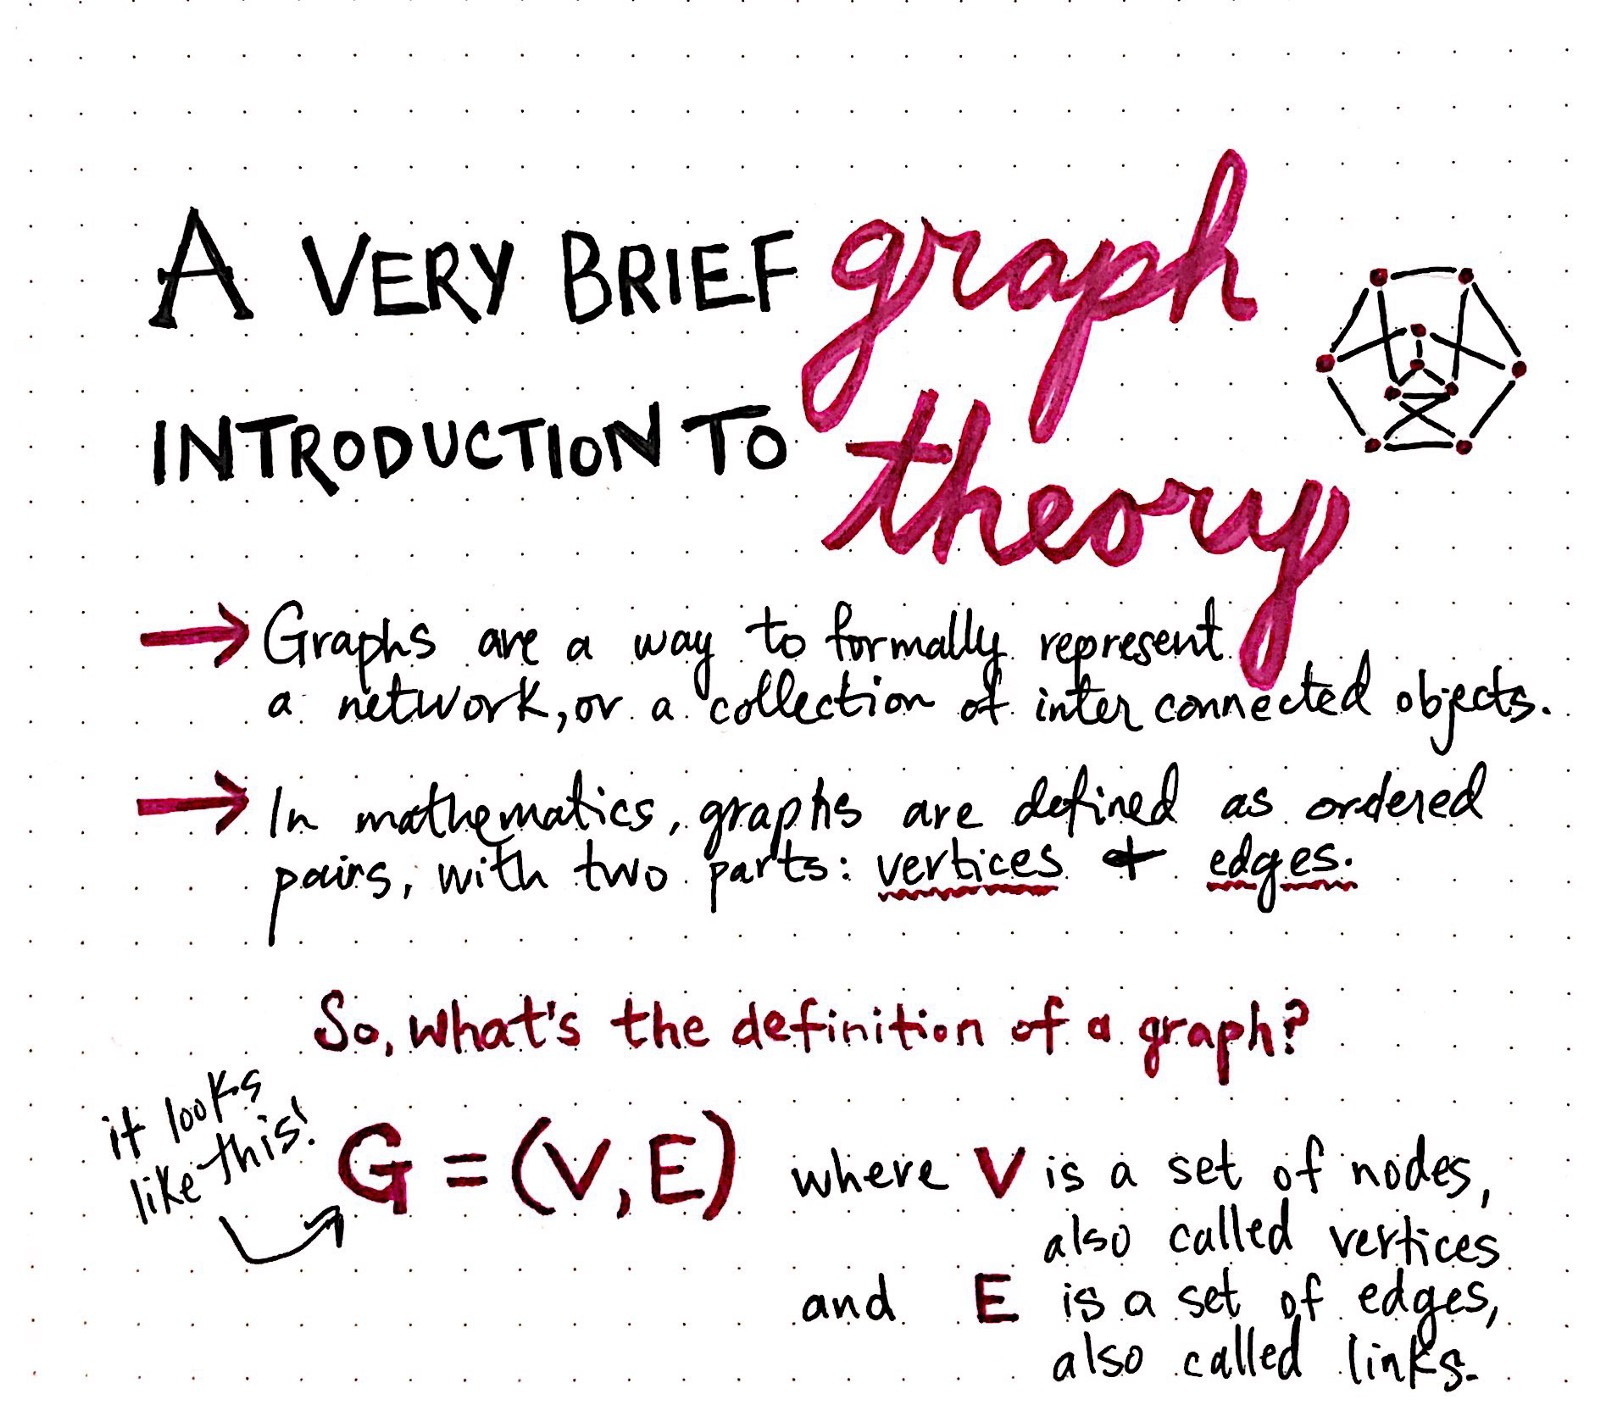 intro in graph theory Graph data structures as we know them to be computer science actually come from math, and the study of graphs, which is referred to as graph theory in mathematics, graphs are a way to formally represent a network, which is basically just a collection of objects that are all interconnected.